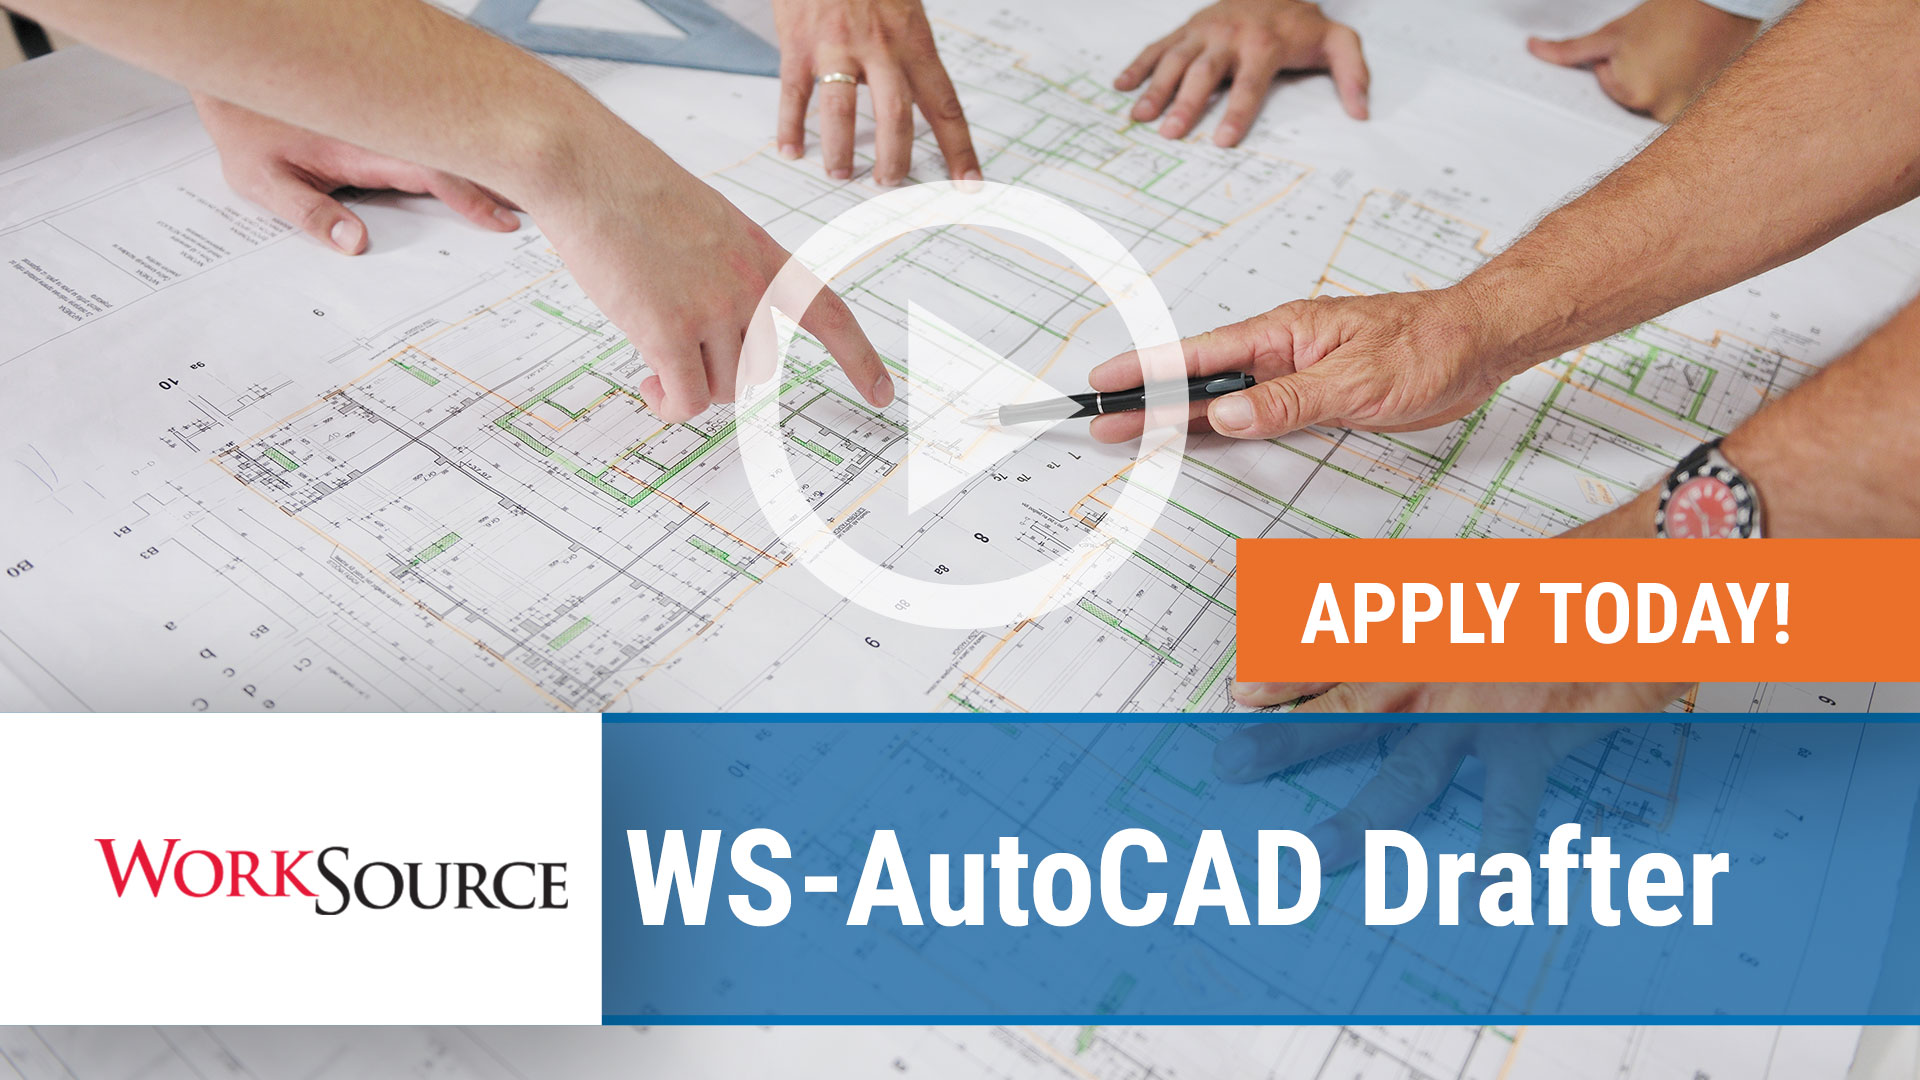 Watch our careers video for available job opening WS AutoCad Drafter in Russellville, Arkansas